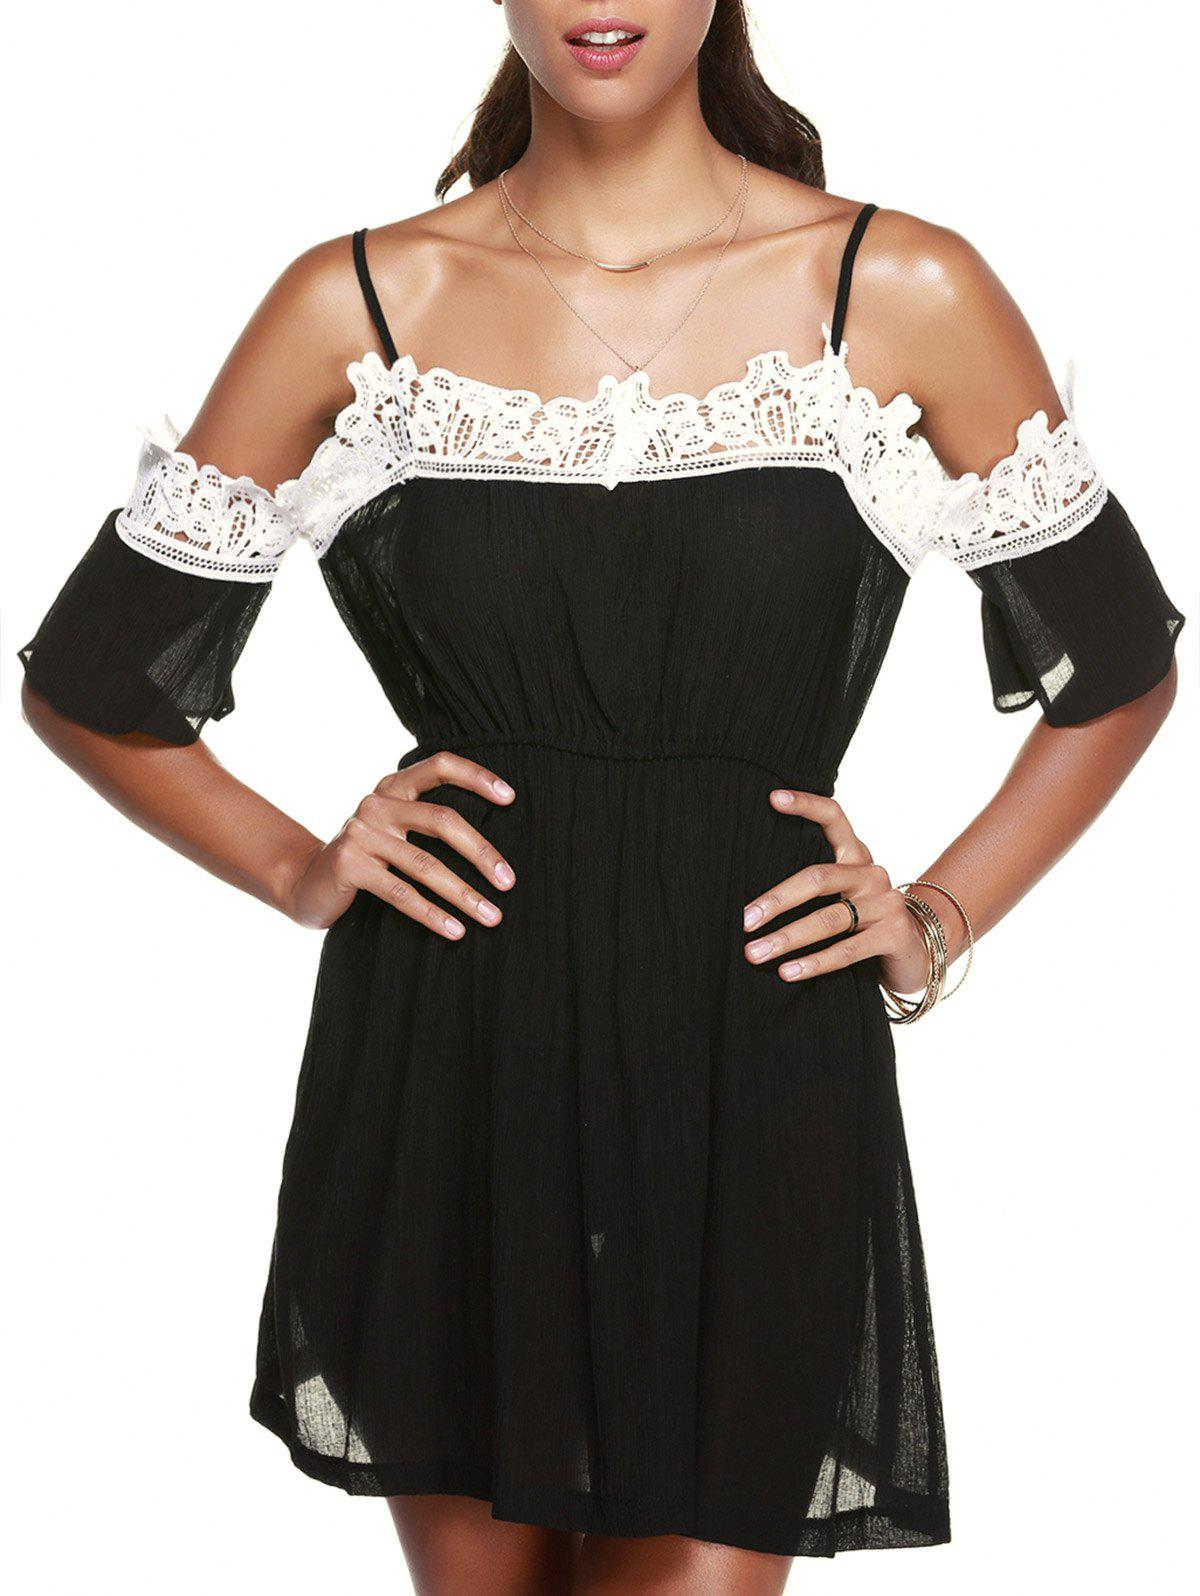 Fashionable Spaghetti Strap Slimming Lace Splicing Women's Dress - BLACK ONE SIZE(FIT SIZE XS TO M)